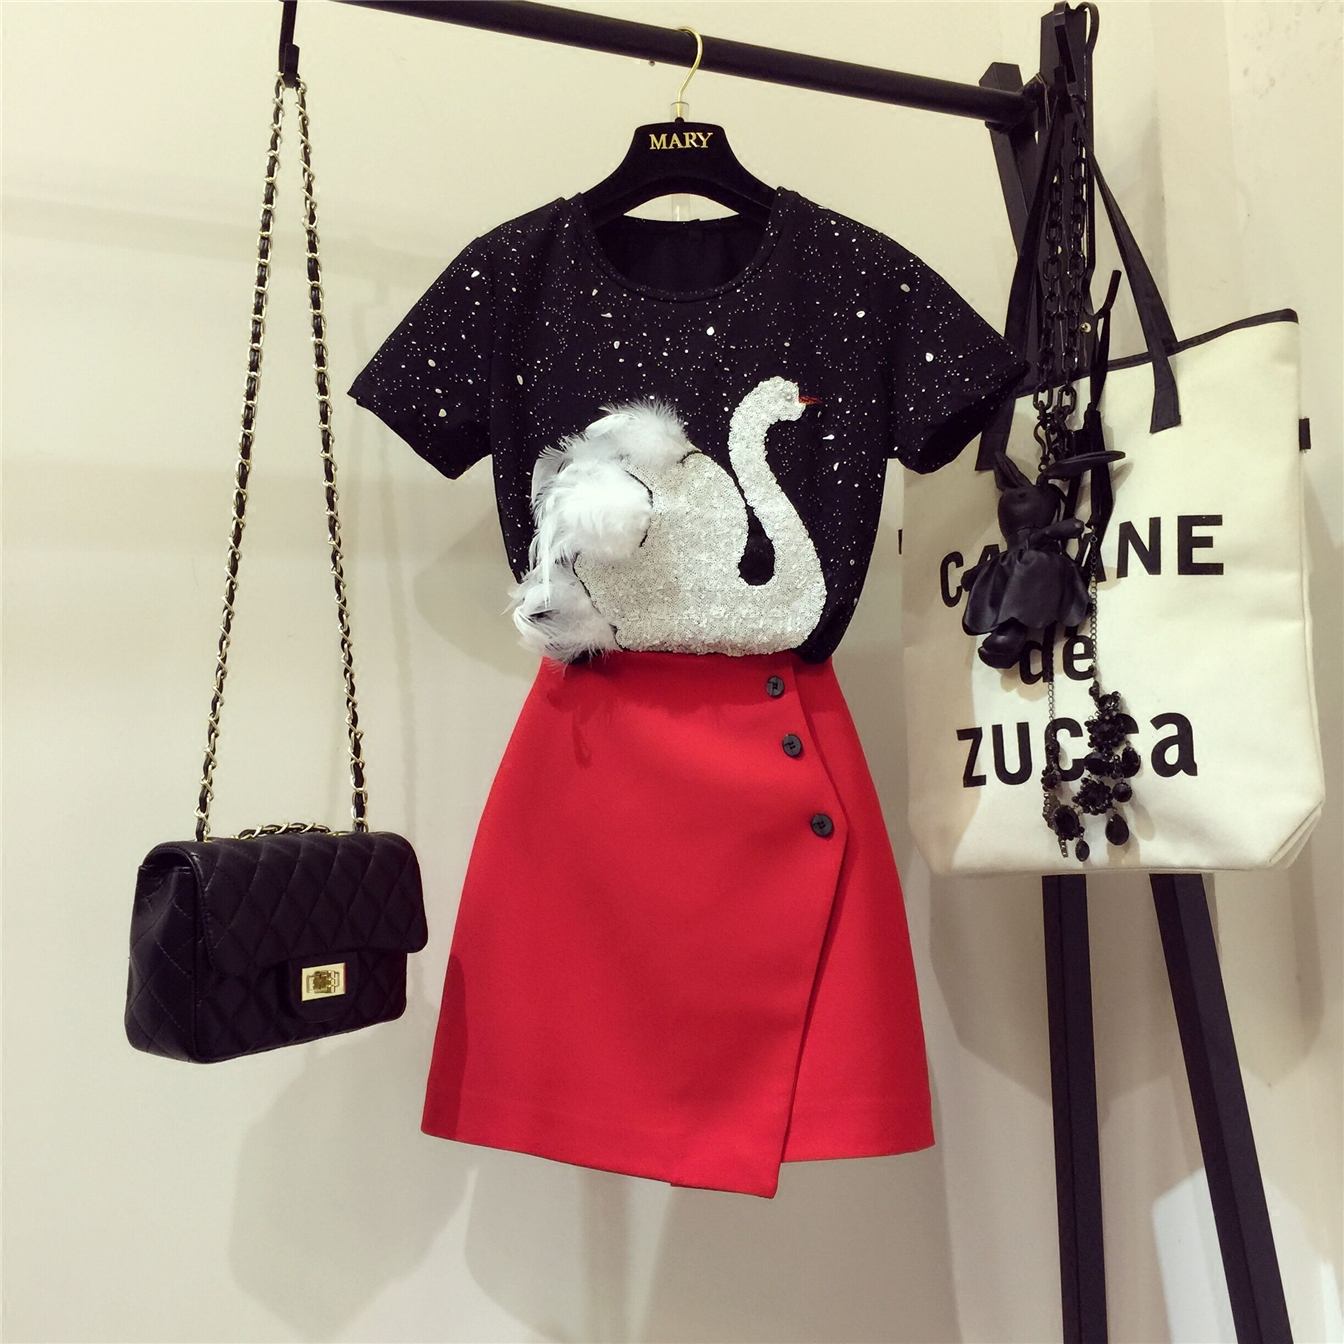 2019 New Summer Two Piece Female Sets Embroidery Sequined Swan Black Short Sleeve T-shirt Tops + Red A-line Short Skirt Suits